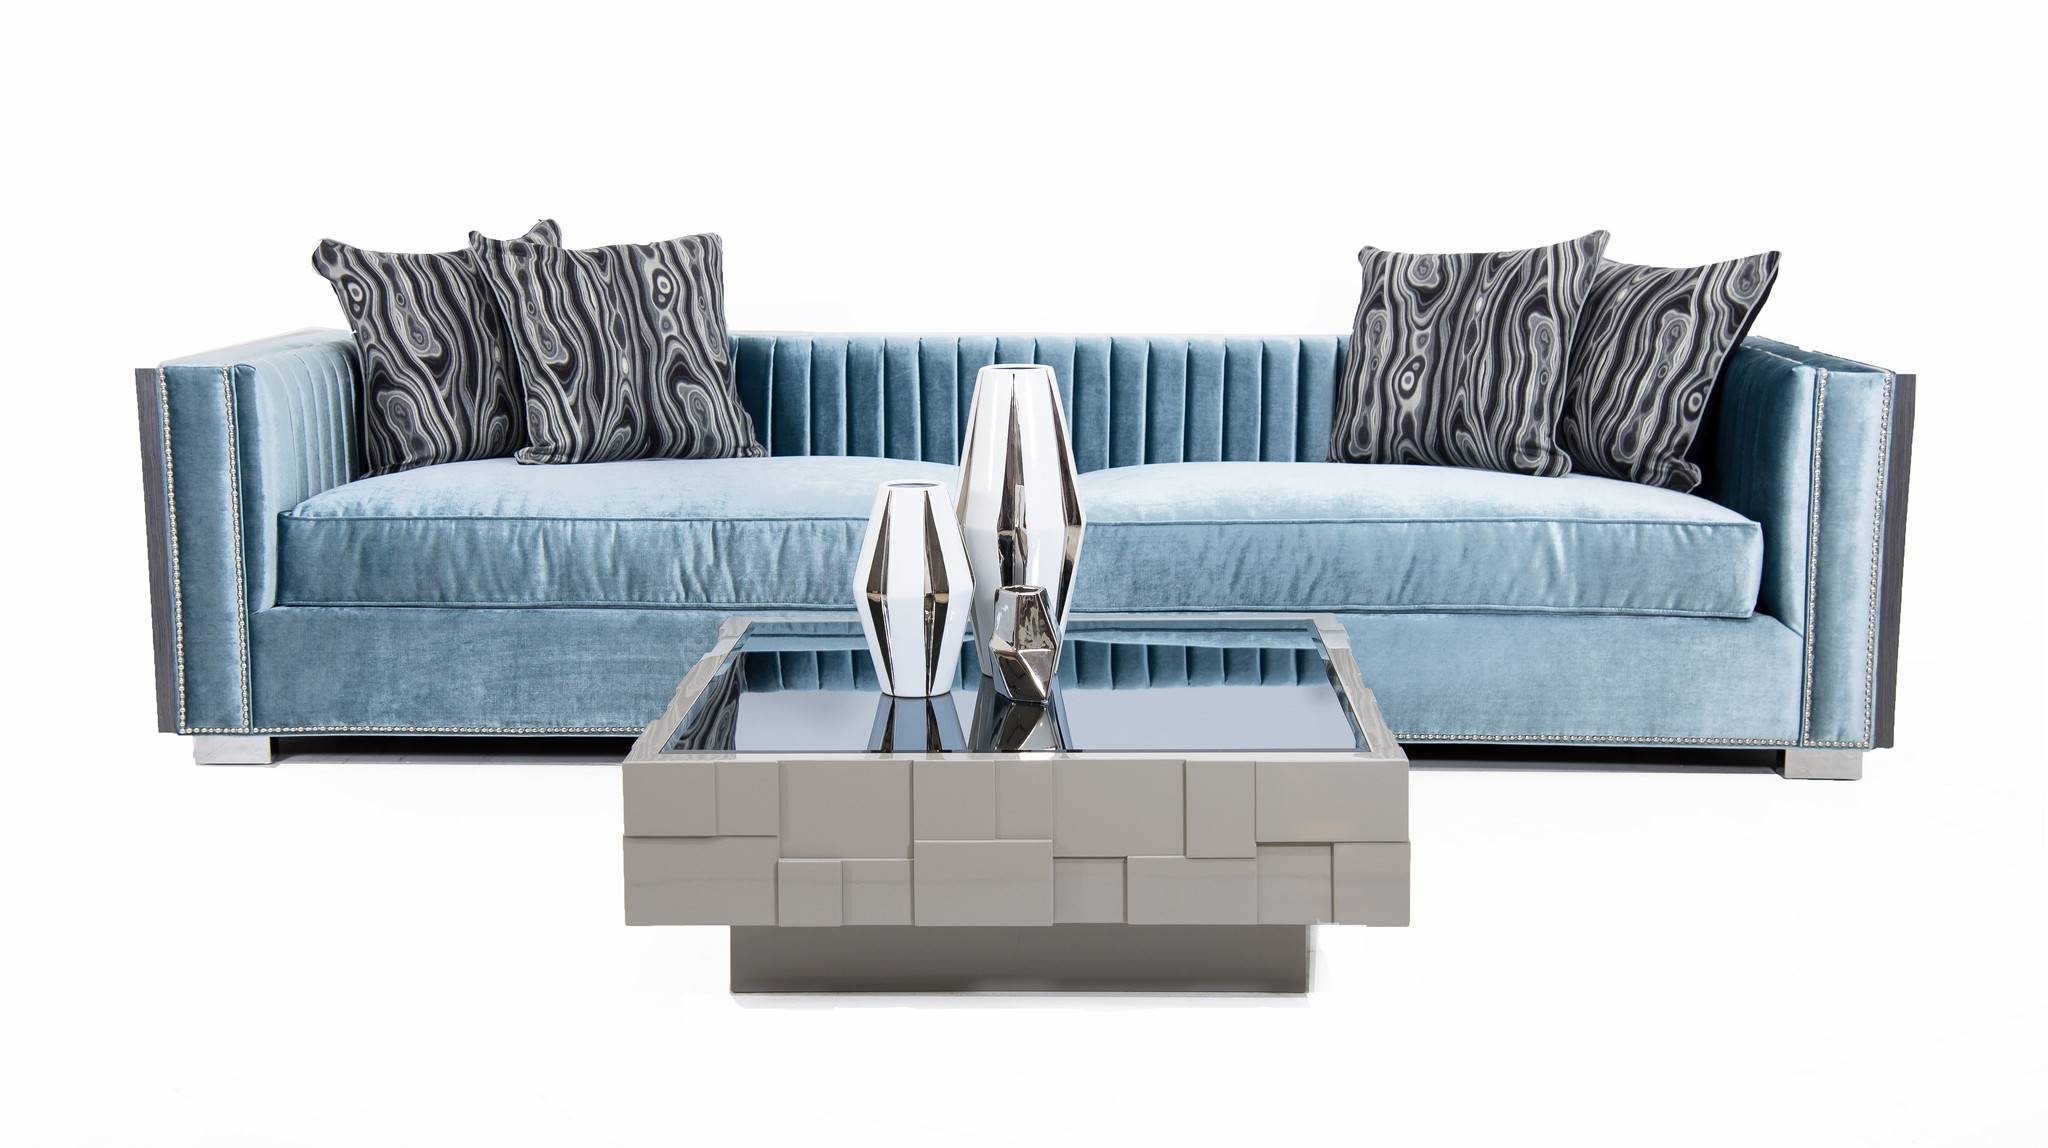 Shop Sofa 54 With Shop Sofa | Jinanhongyu within Sofa Trend (Image 11 of 25)